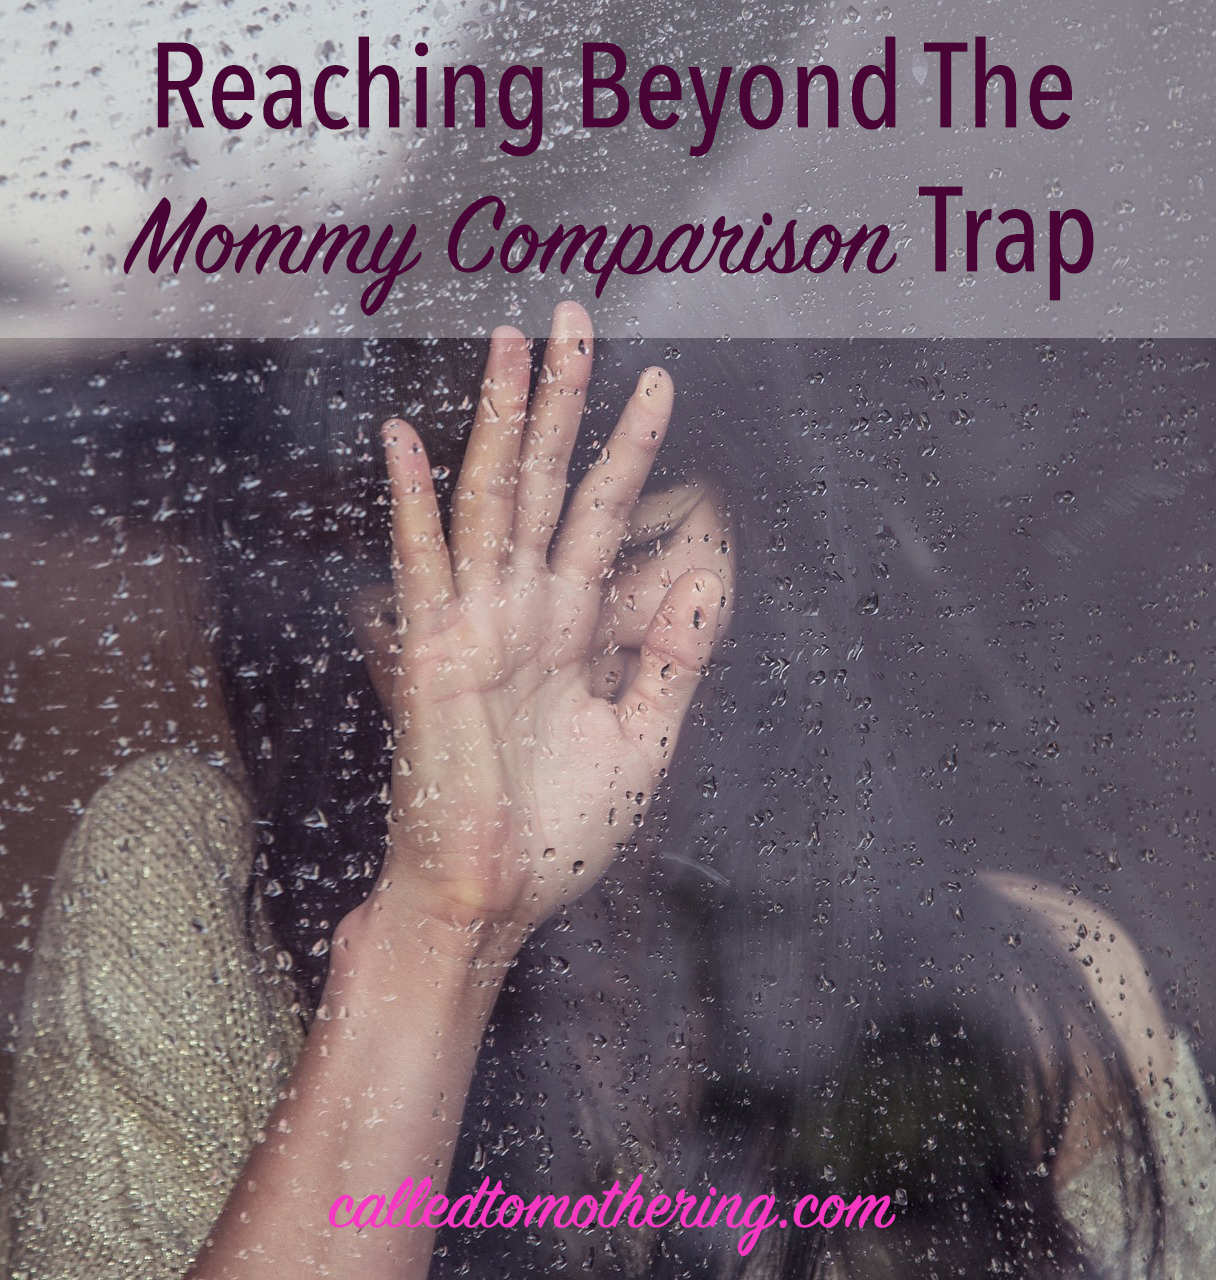 Reaching Beyond The Mommy Comparison Trap